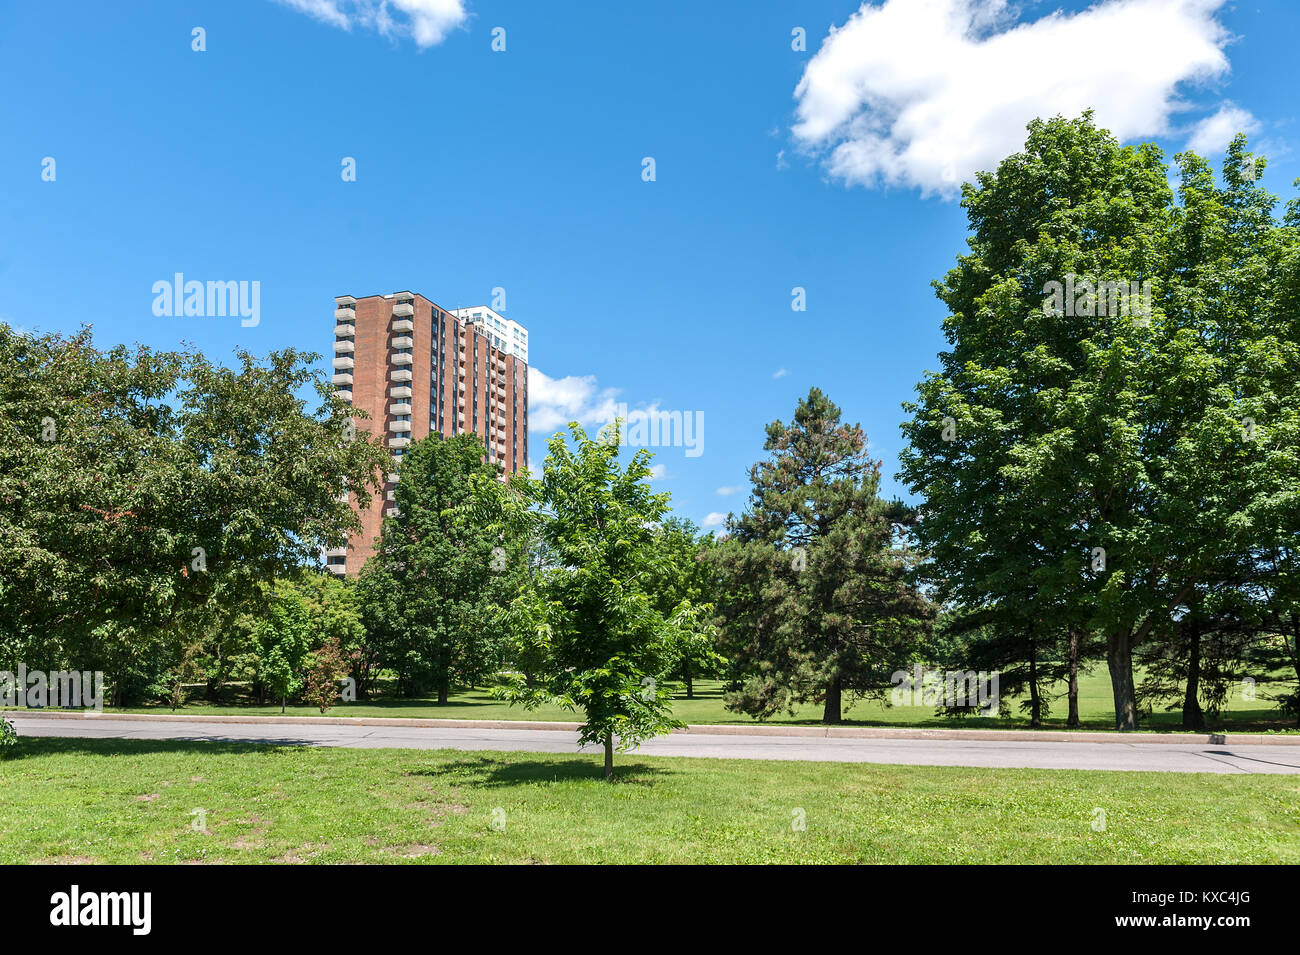 Apartment building and parkland view Stock Photo